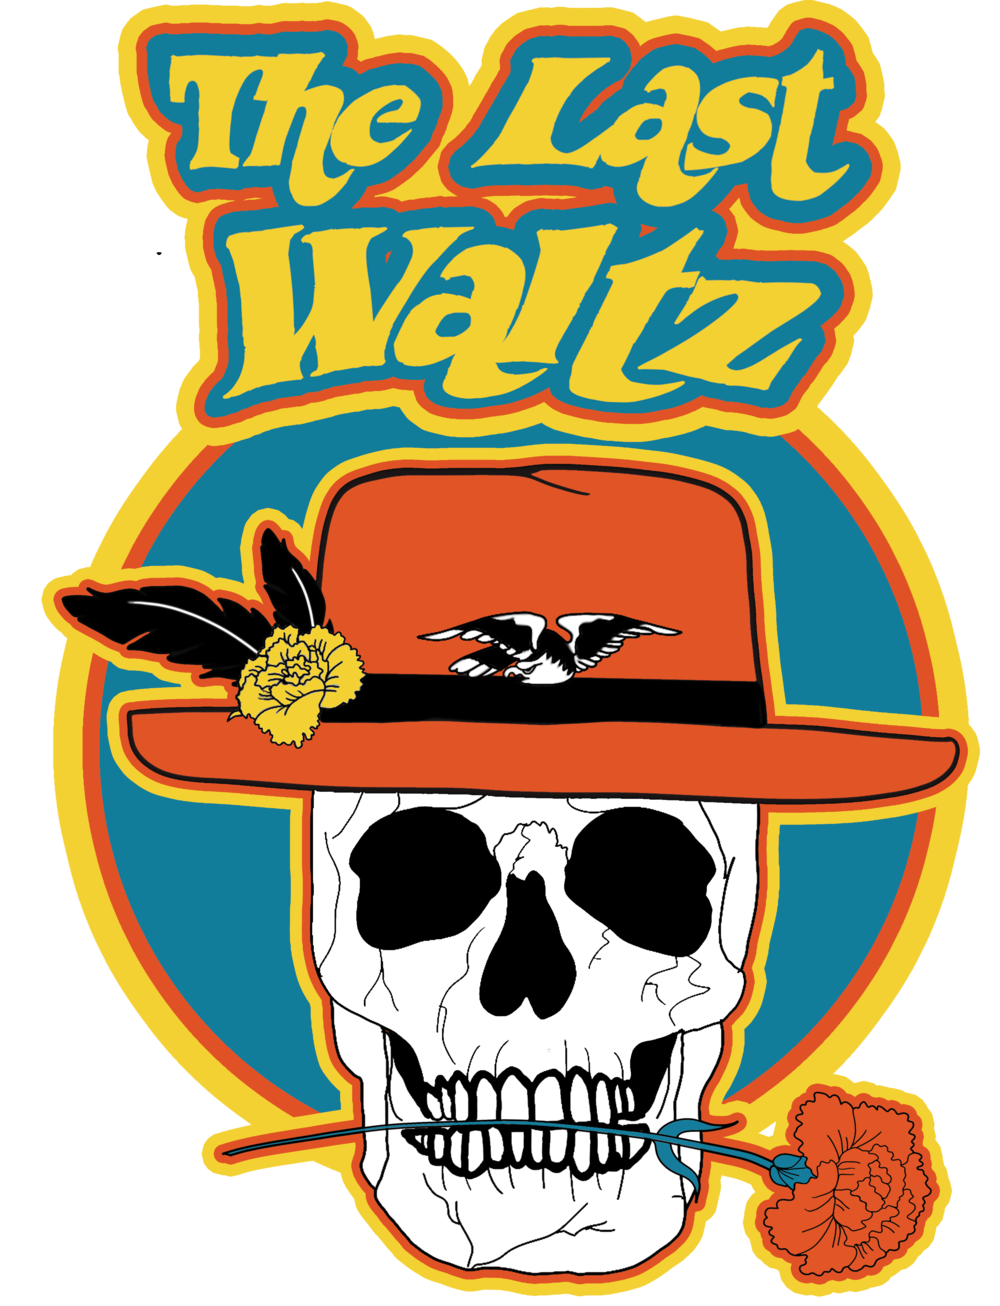 The Last Waltz design by Chi-Flo www.chi-flo.com (Jersey City)Shirtsprinted by A.B. Tees www.abtees1.com (Jersey City) -